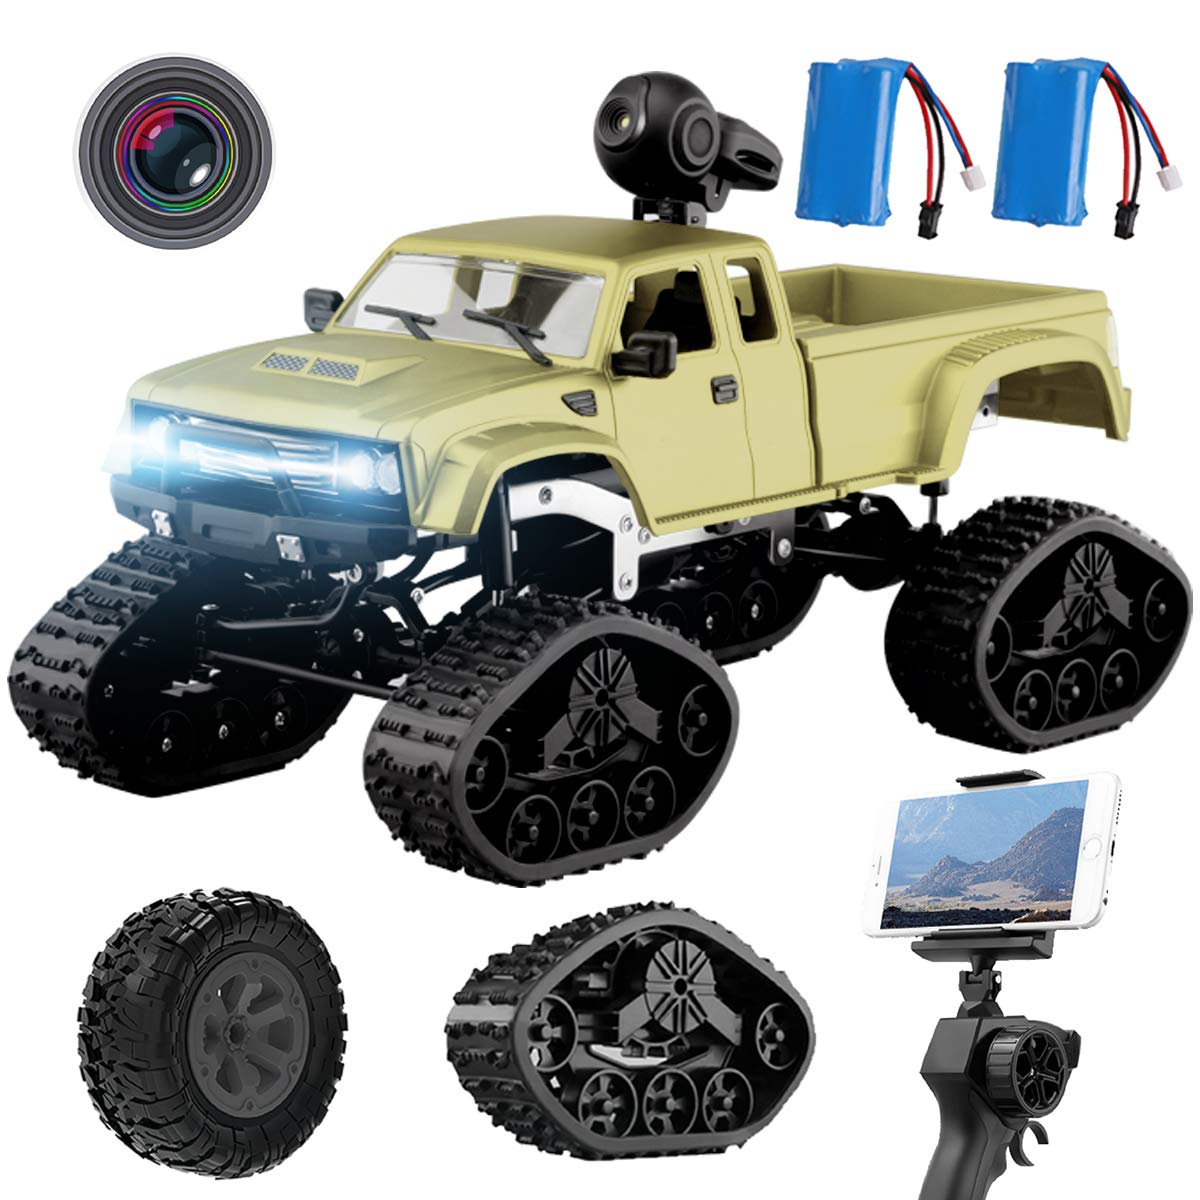 REMOKING RC Hobby Toys Military Truck Off-Road Sport Cars 4WD 2.4Ghz Rock Crawler Vehicle with Wi-Fi HD Camera Gifts for Kids and Adults(Included 2 Kinds of Wheels 2 Batteries)